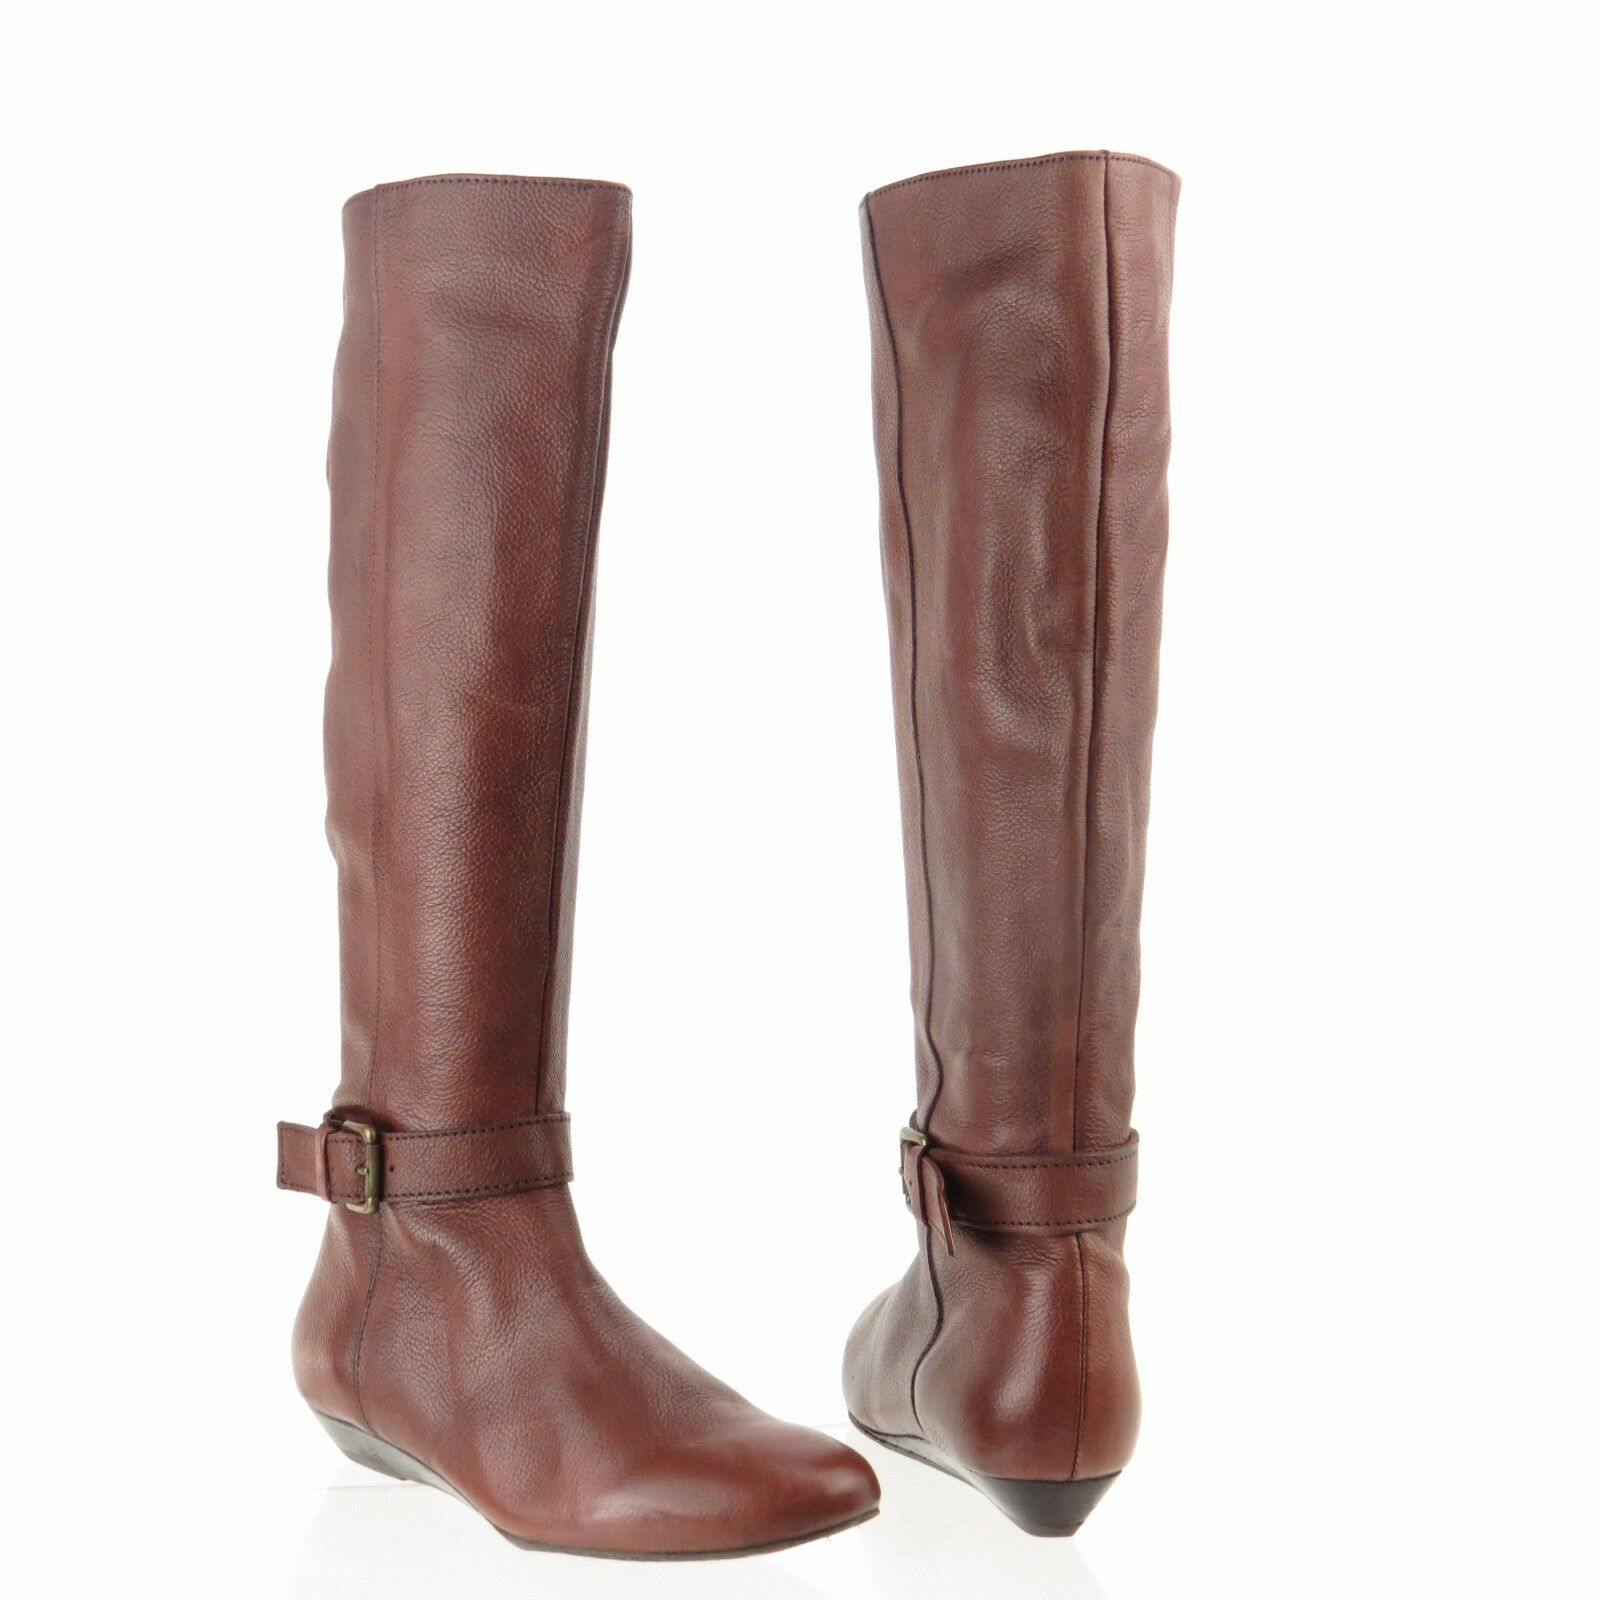 Women's Ciao Bella Leslie shoes Brown Leather Knee High Zip Up Boots Size 6 M